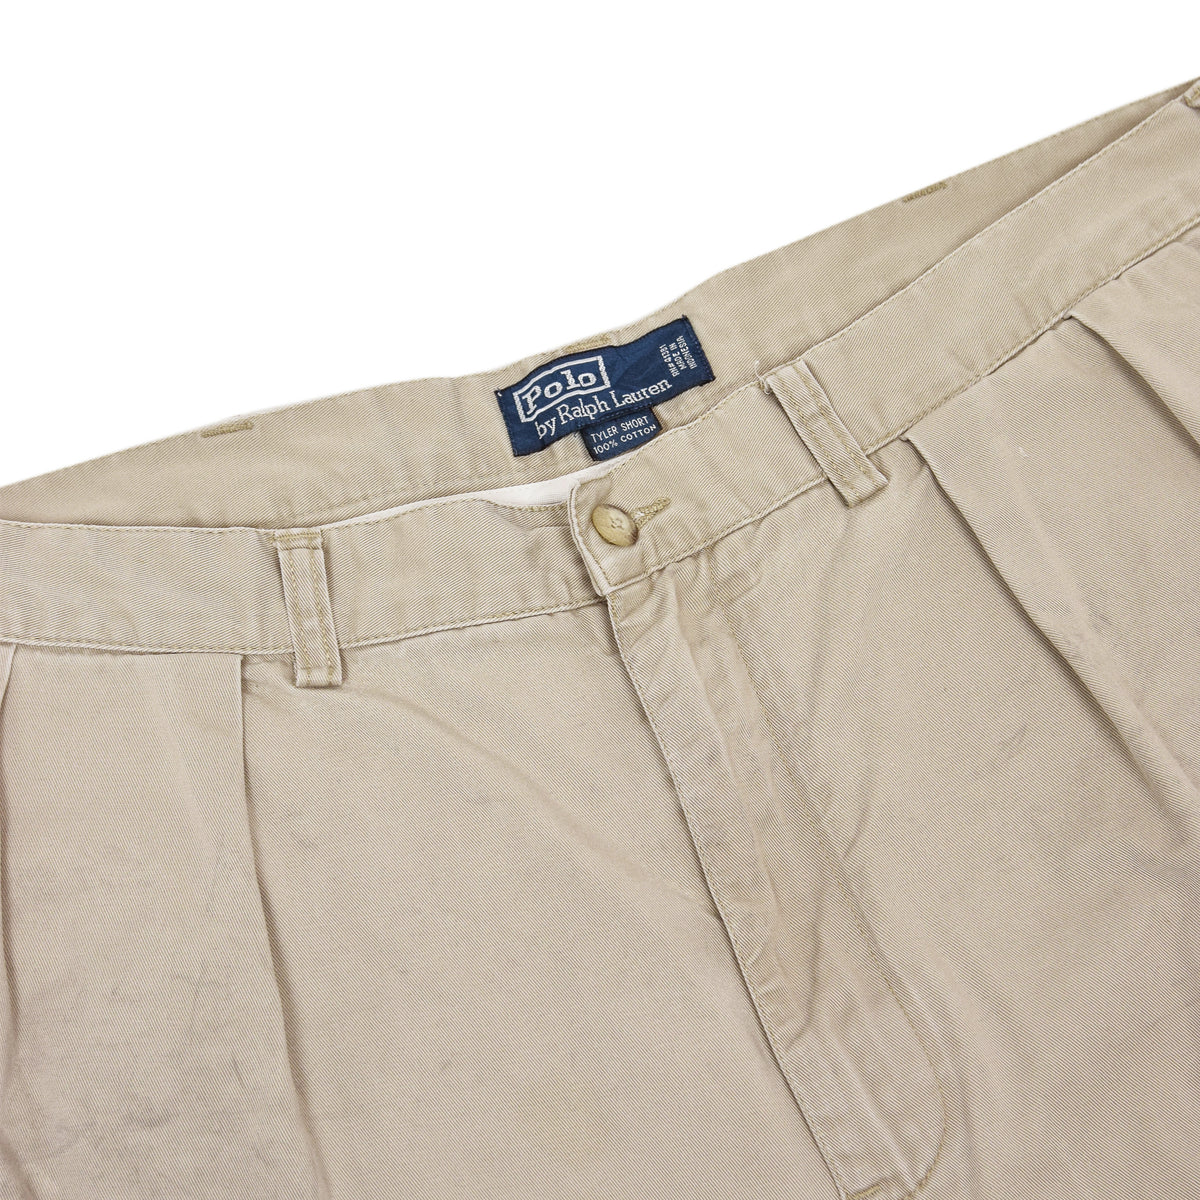 Vintage 90s Polo Ralph Lauren Tyler Cotton Double Pleated Chino Shorts 36 W waistband